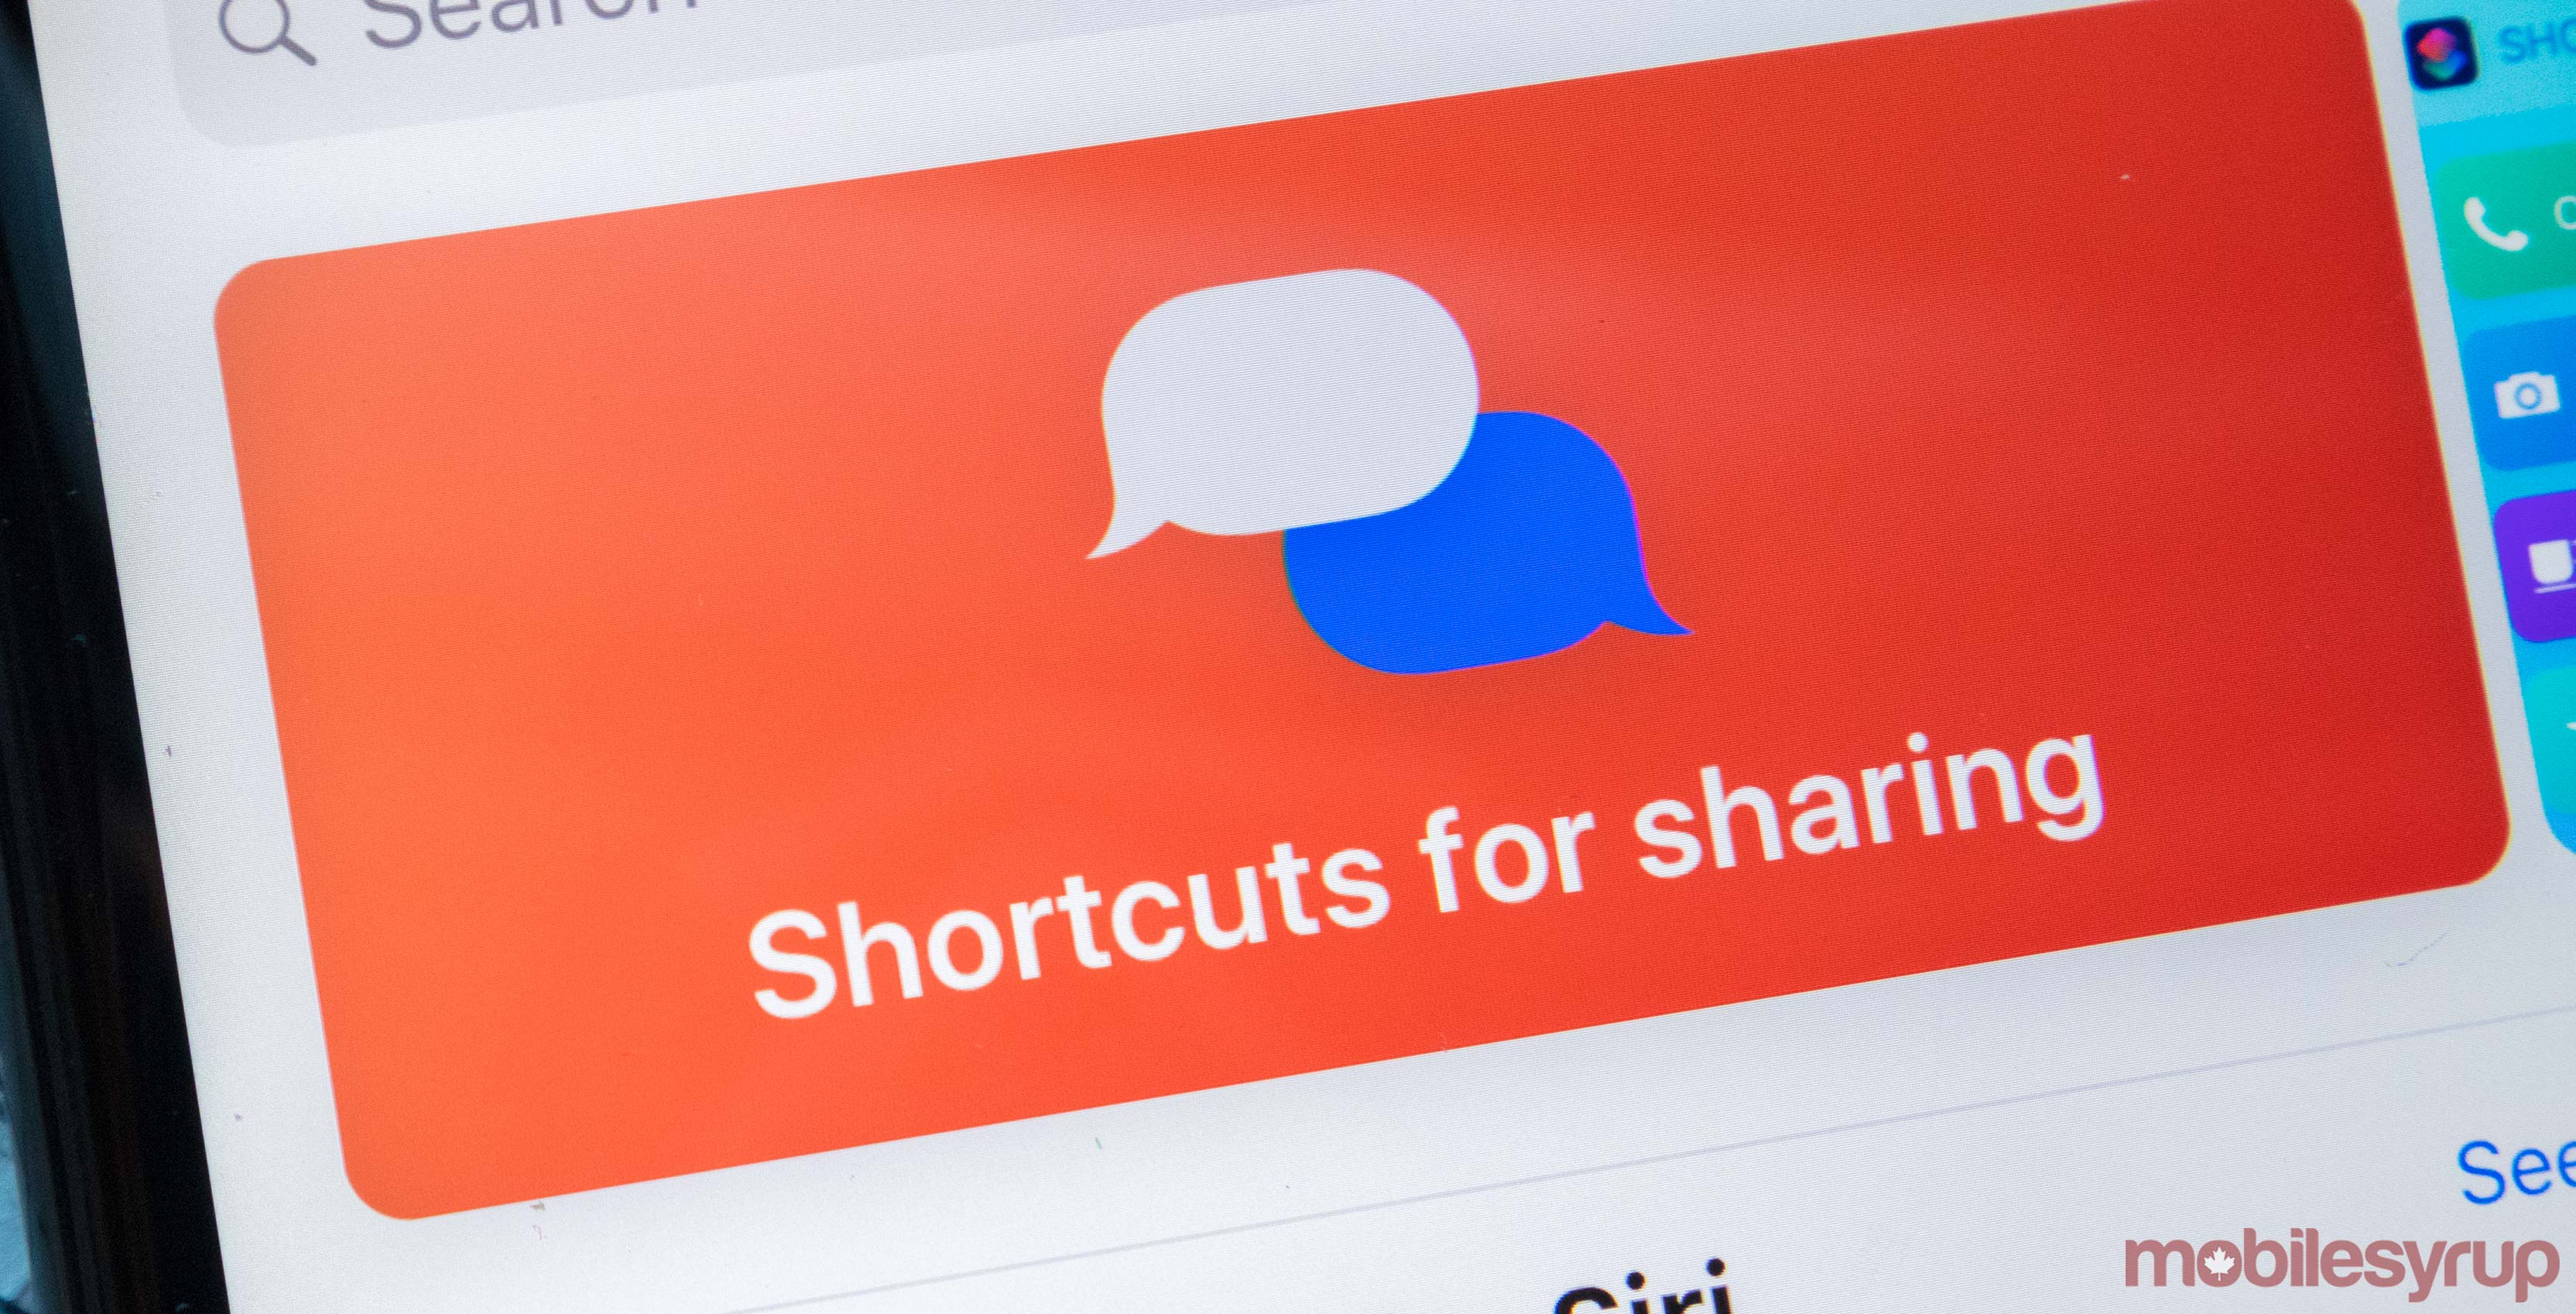 Some of the best Apple Shortcuts and where to find more